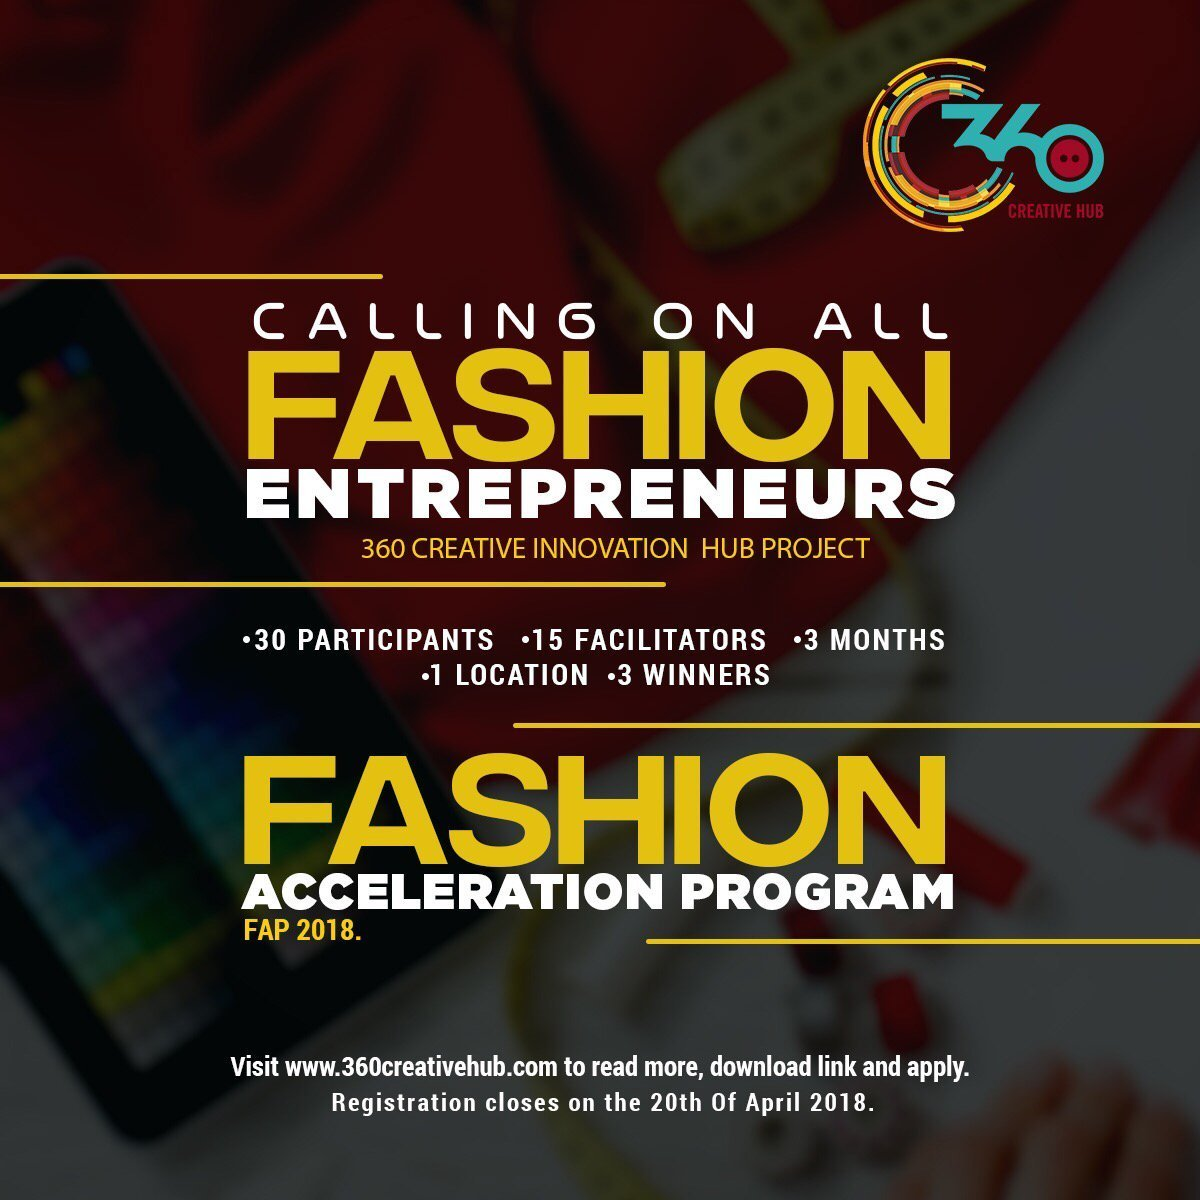 360 Creative Hub Fashion Acceleration Program (FAP)